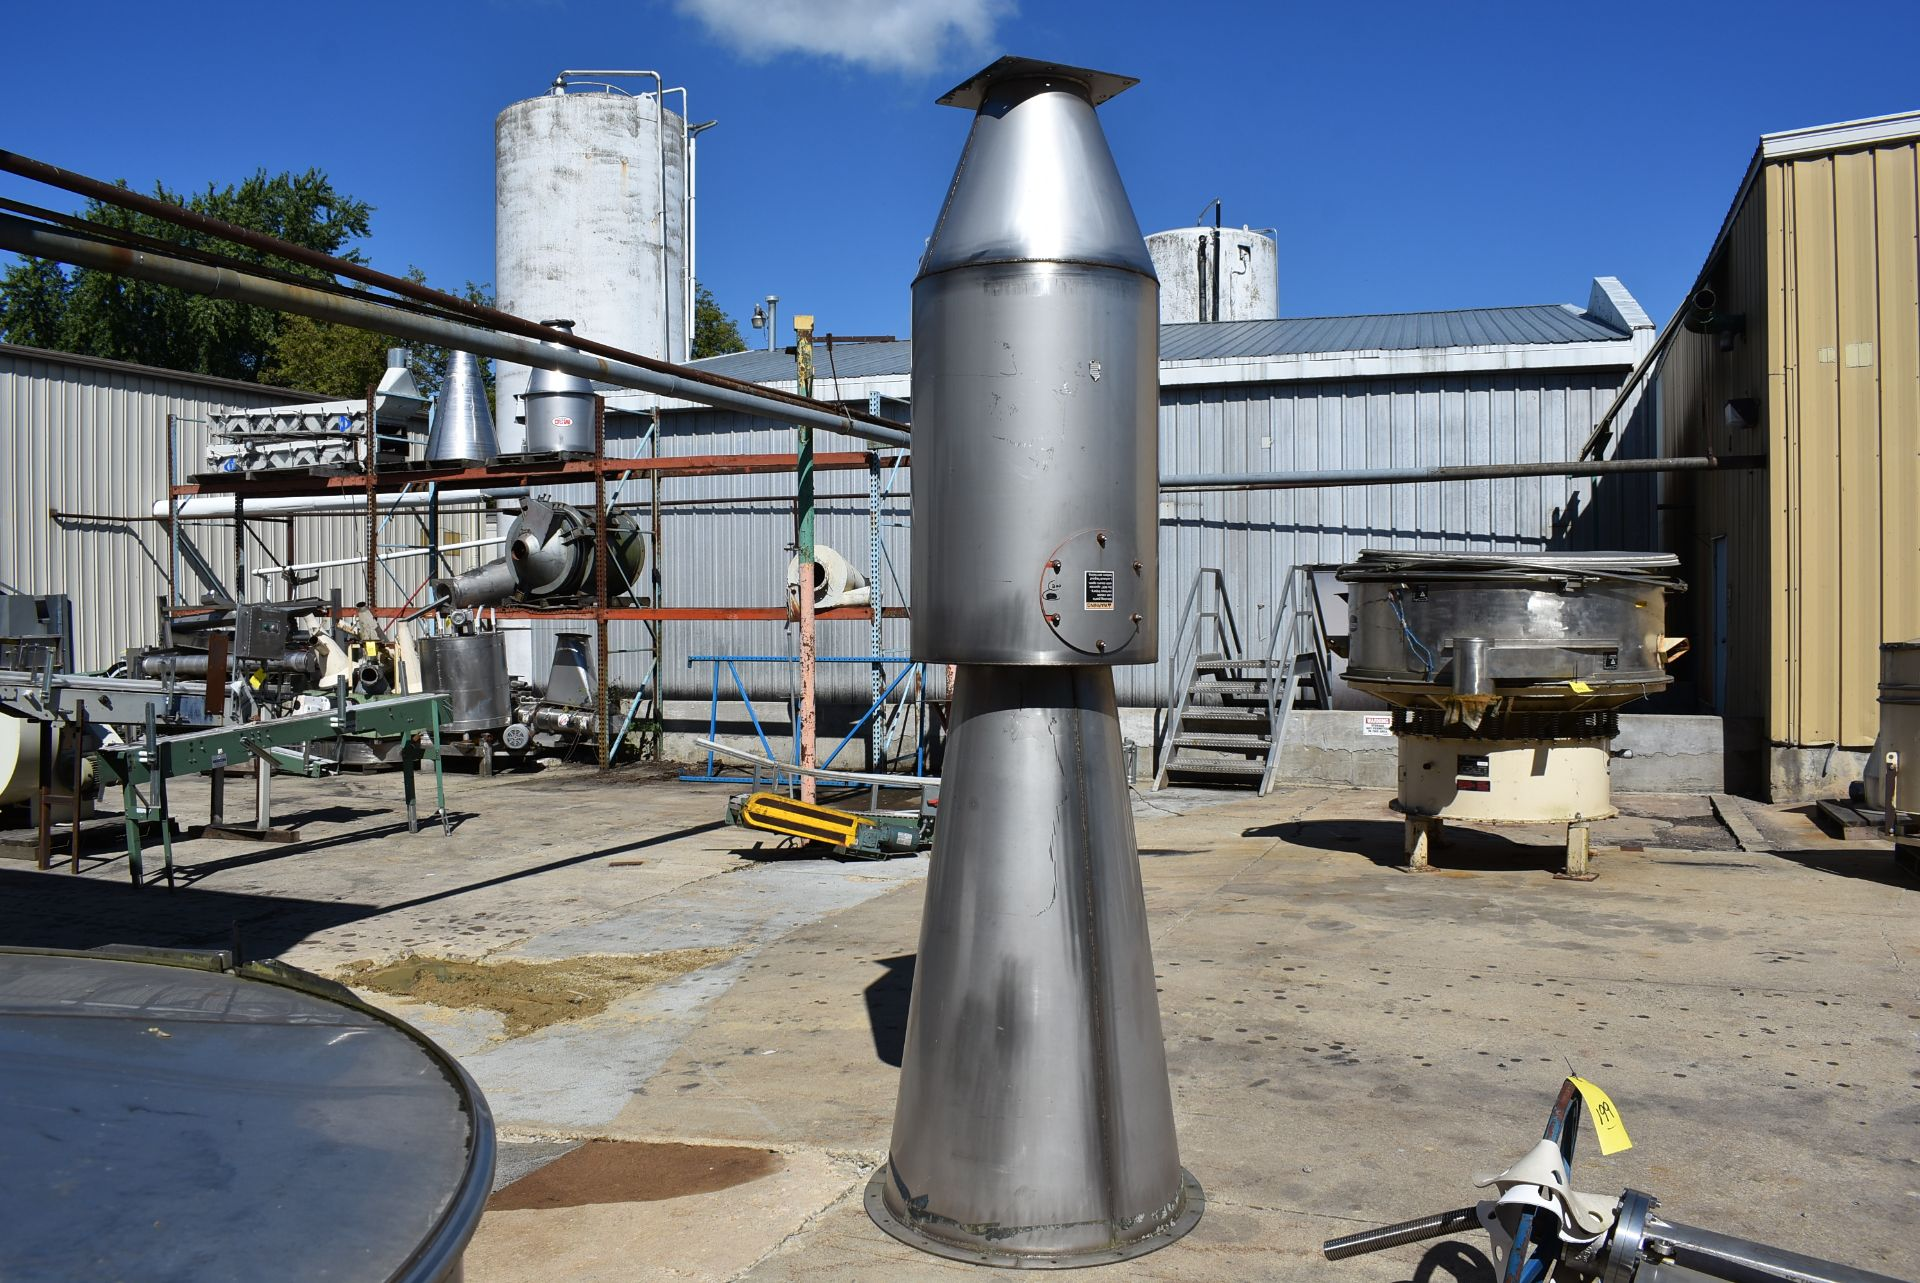 Stainless Steel Hopper, 9' Top to Bottom and MAC SS Air Flow Component - Image 3 of 4